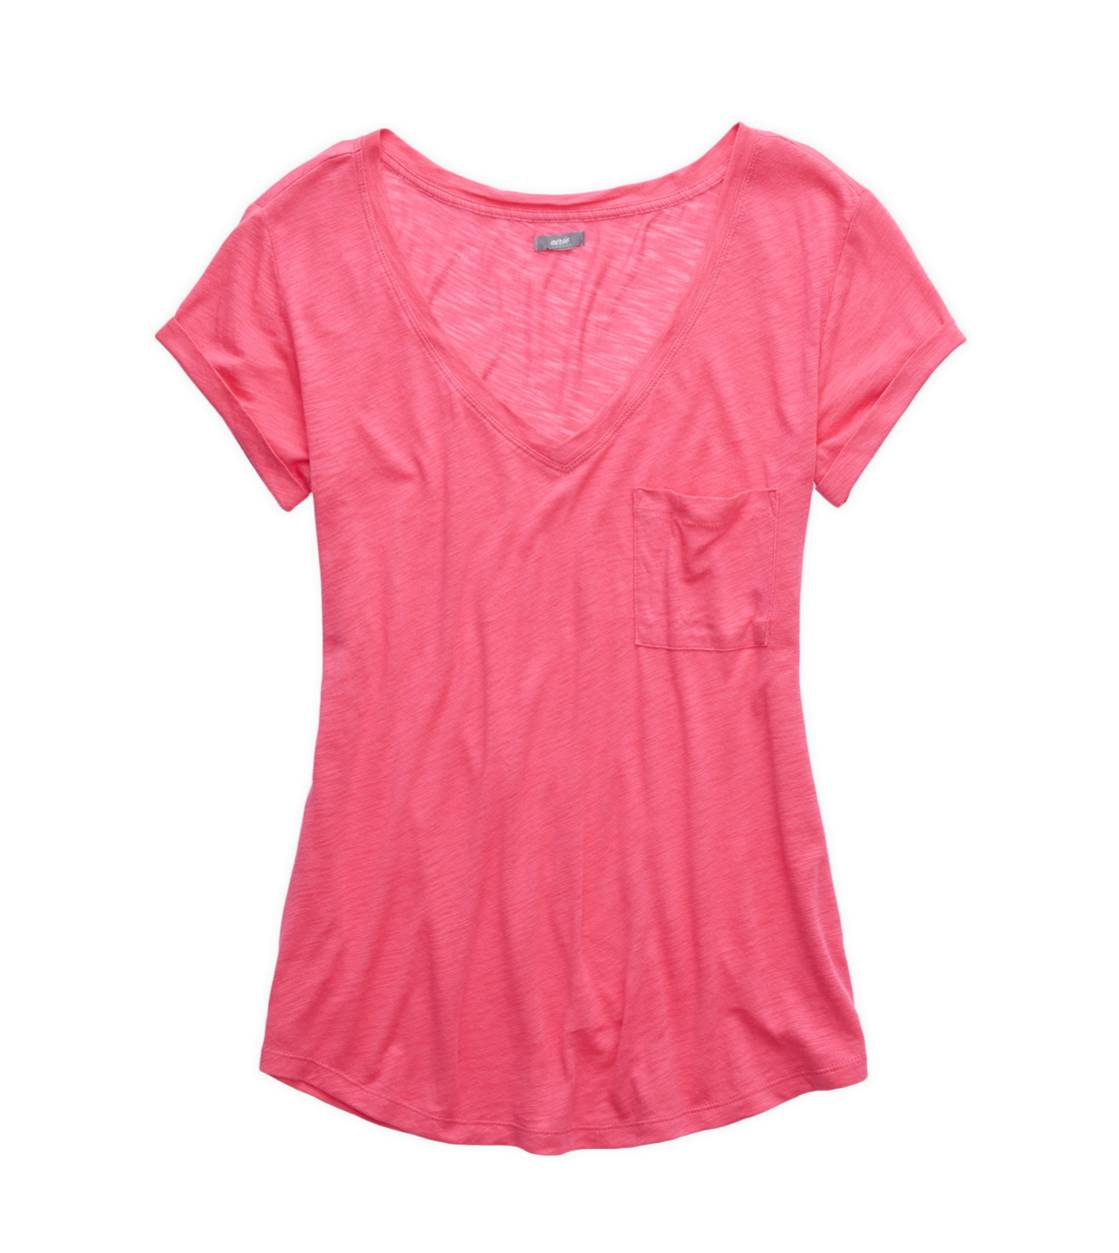 Sweetheart Aerie Boyfriend V-Neck T-Shirt